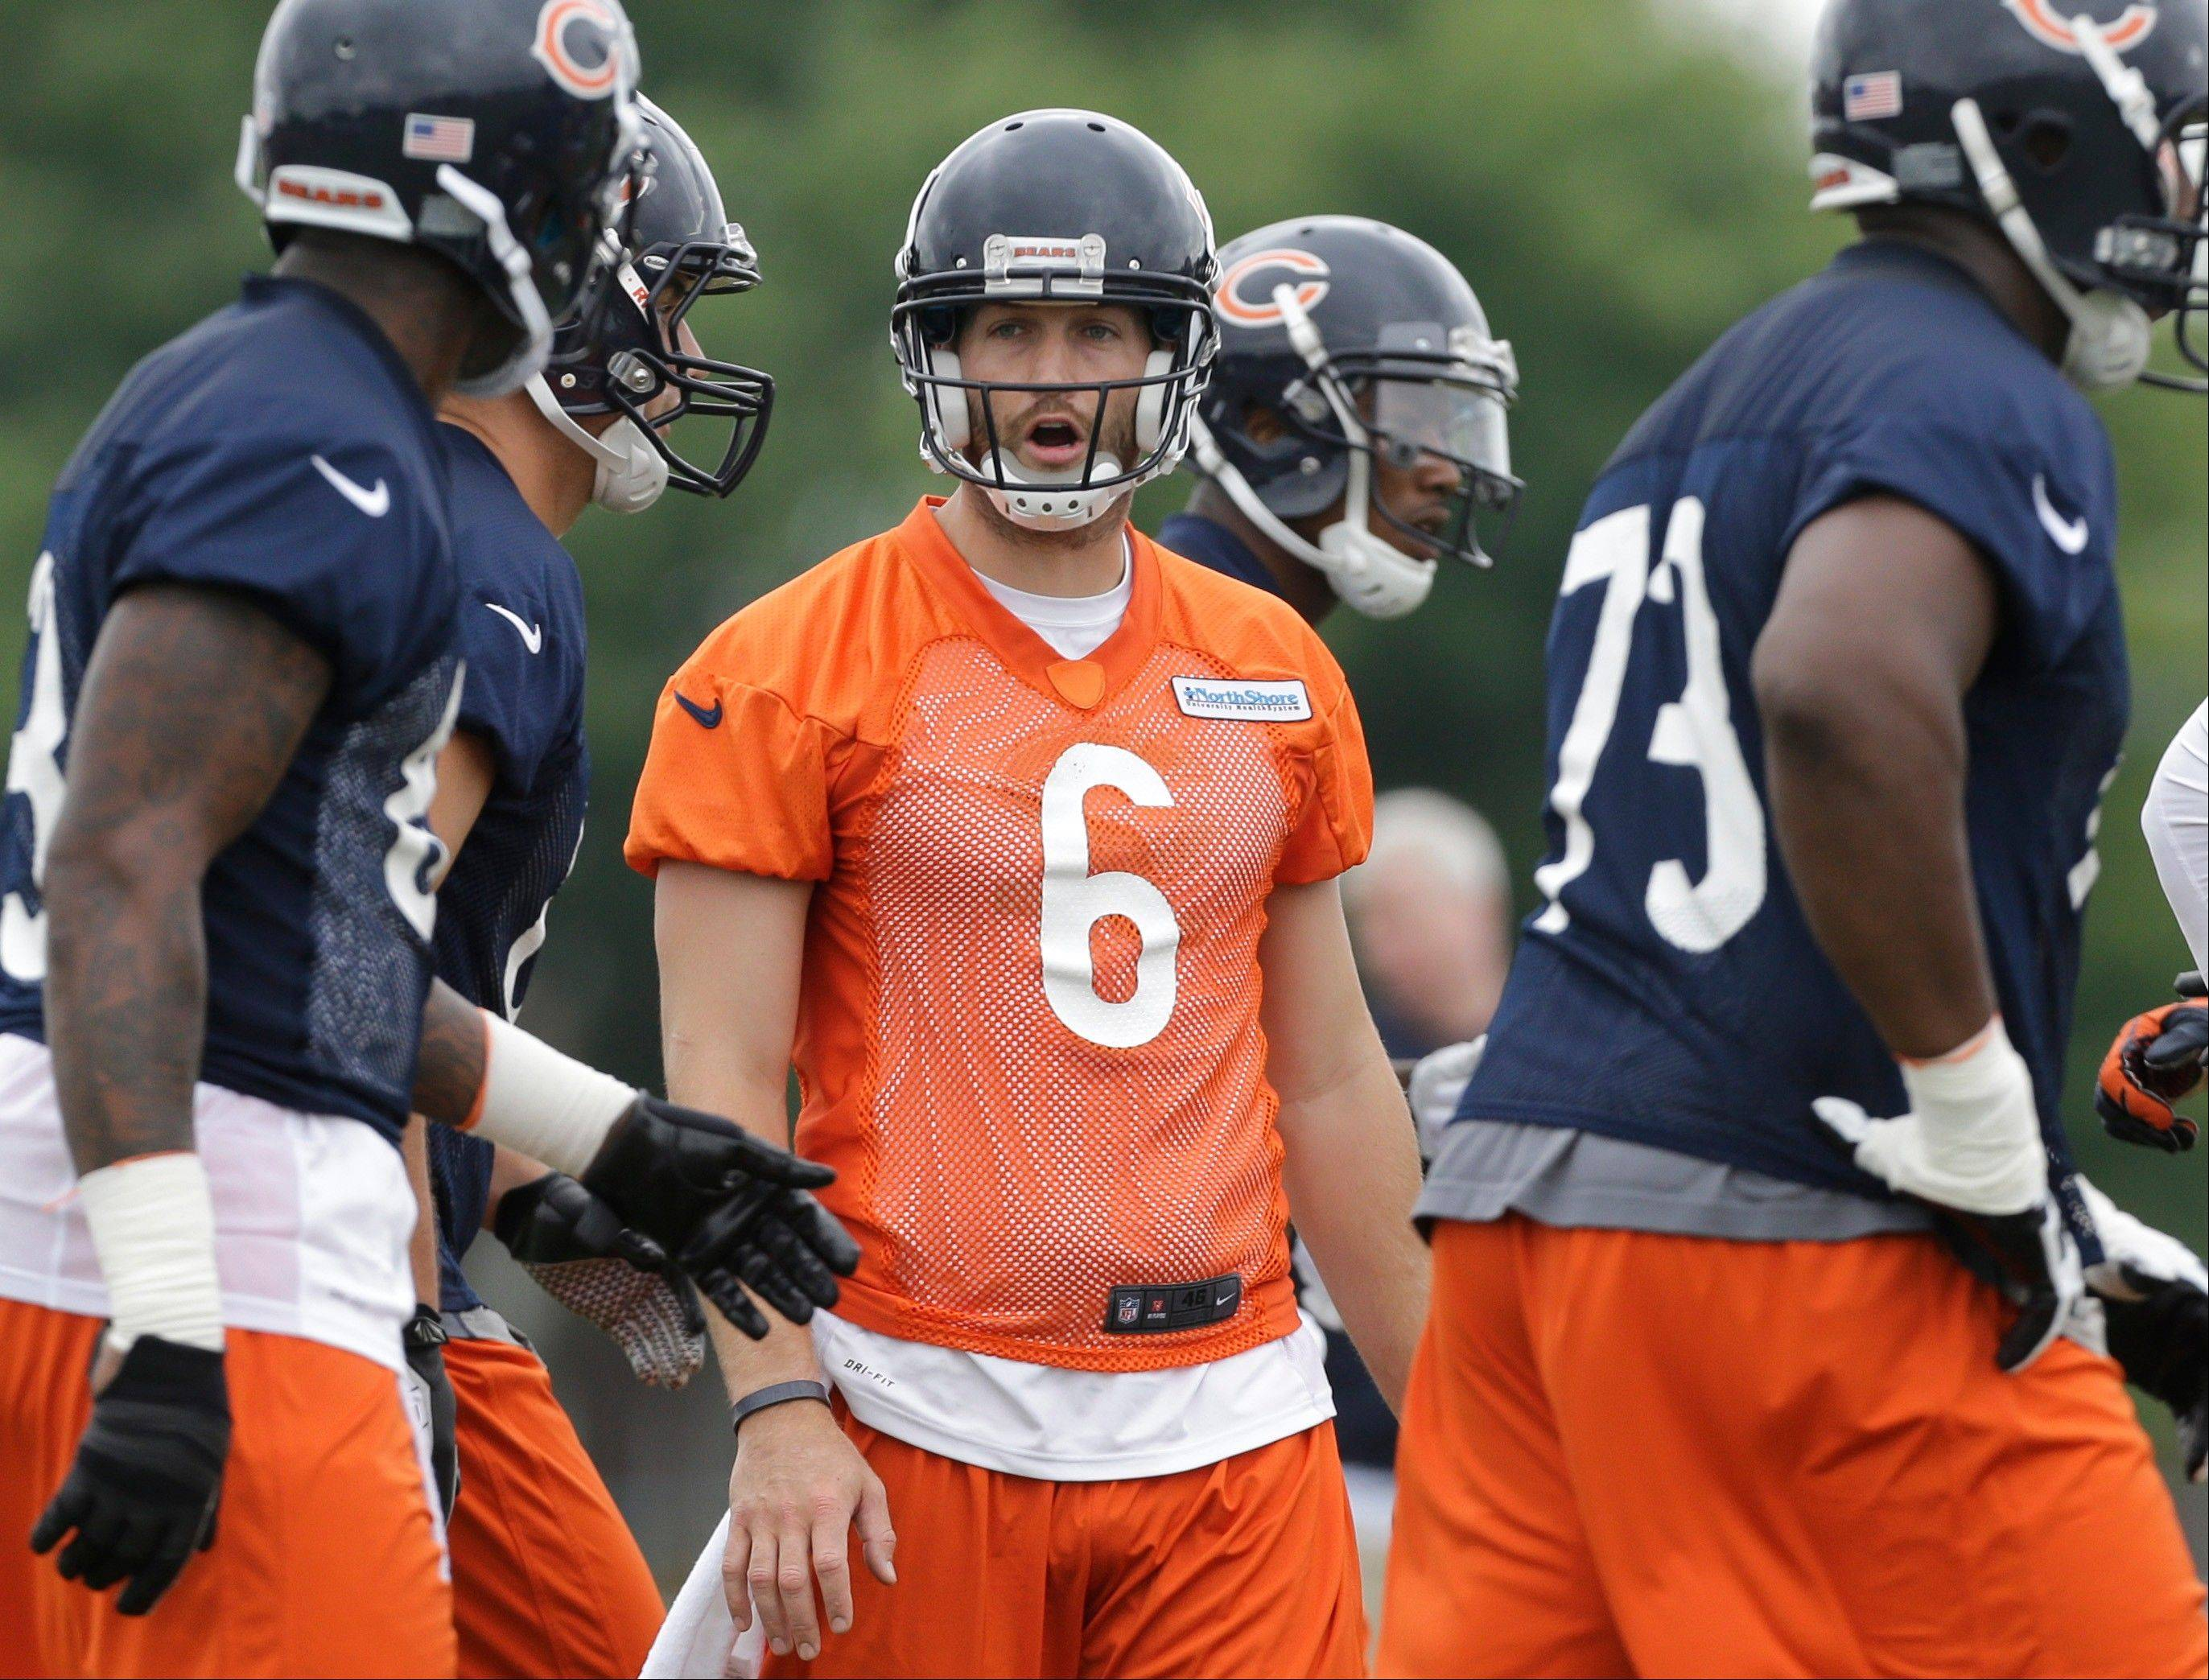 Chicago Bears quarterback Jay Cutler (6) talks to teammates during NFL football training camp Saturday, July 27, 2013, at Olivet Nazarene University in Bourbonnais.